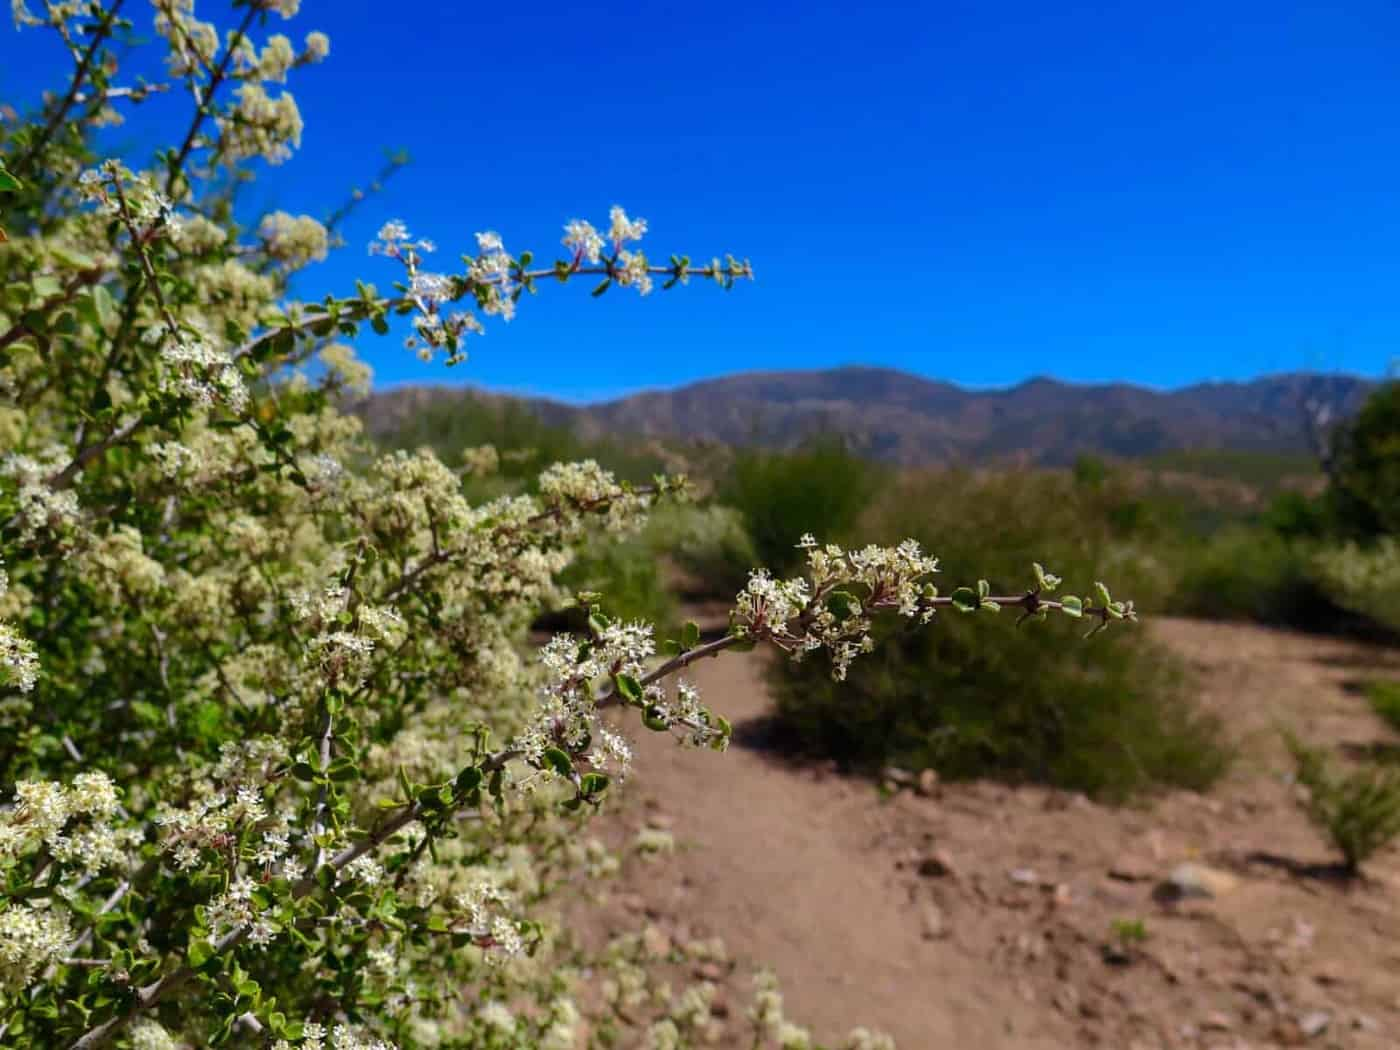 pacific crest trail desert flower